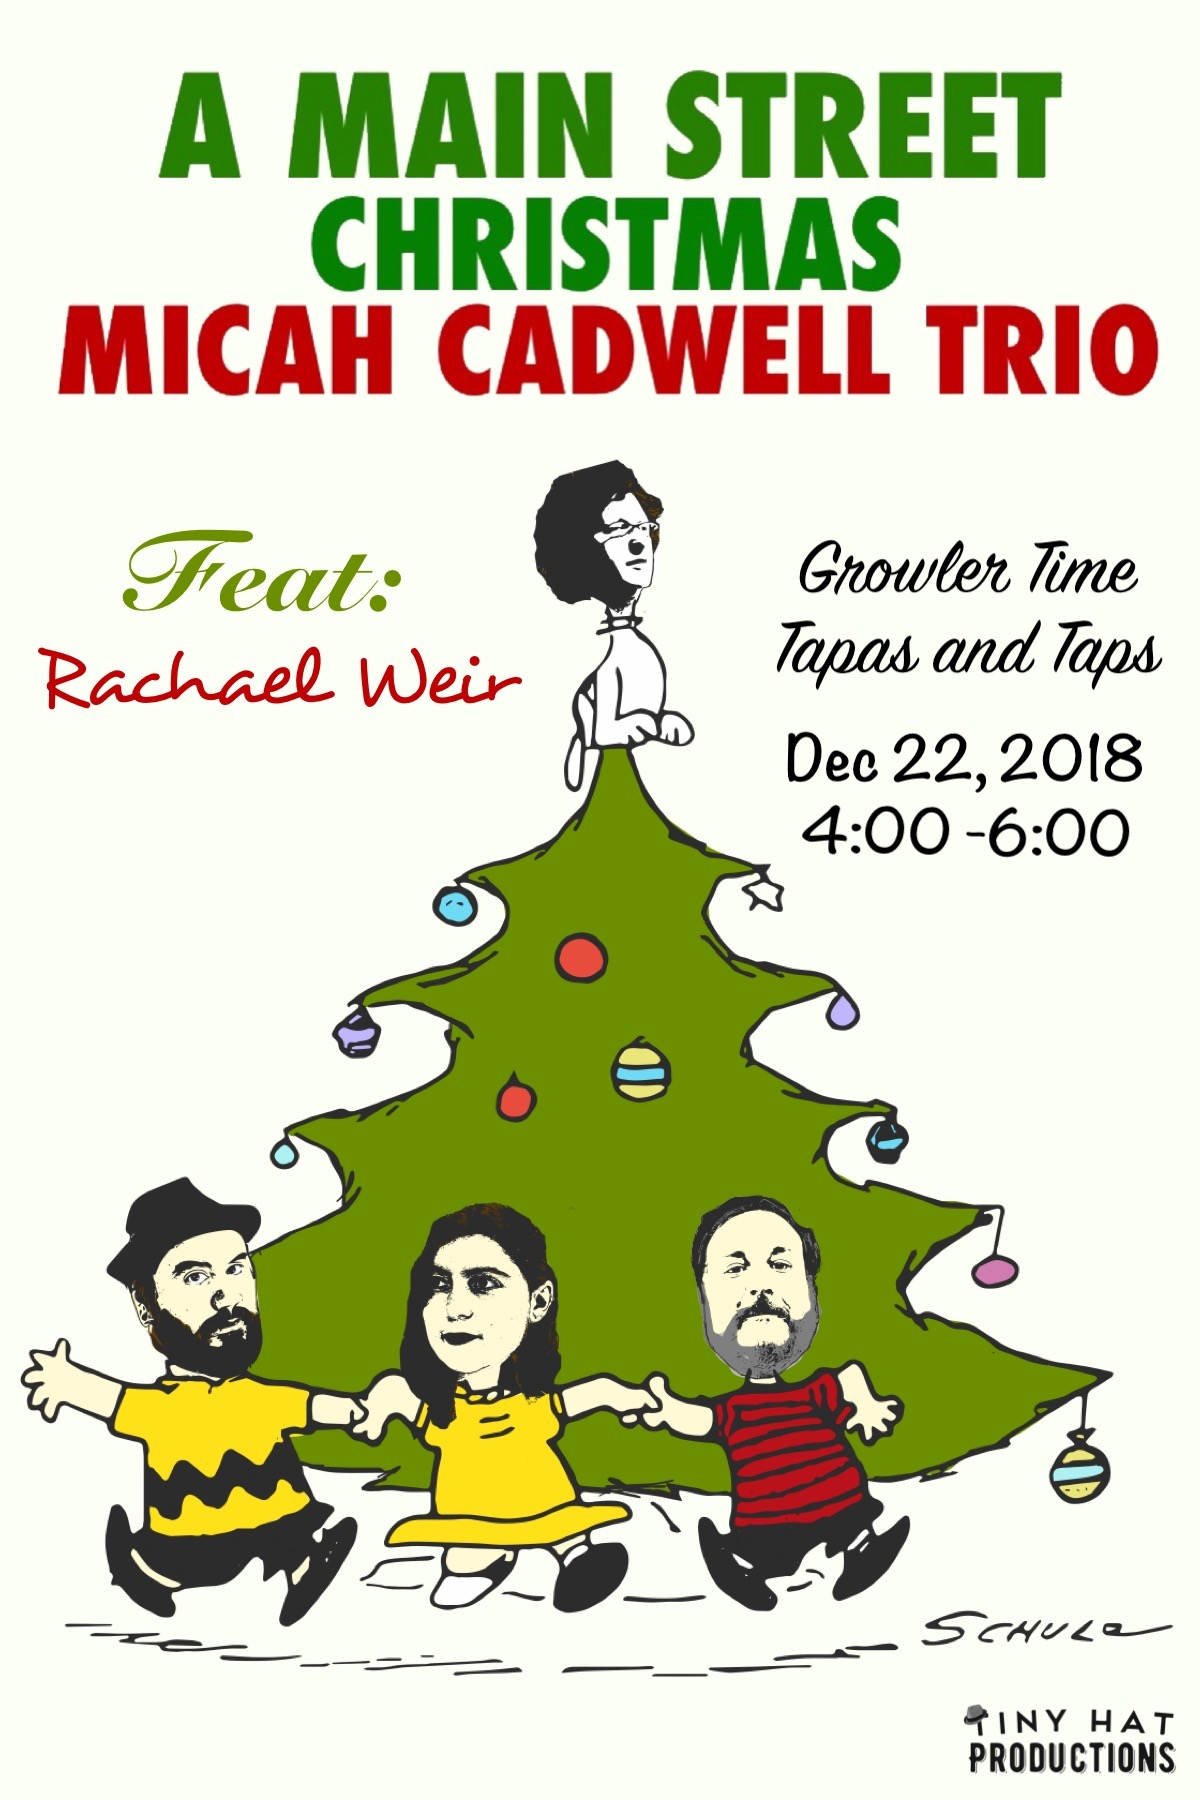 2nd Annual Holiday Concert on Main St - Dec 22, 2018 - Join us at Growler Time Tapas and Taps on Main St in Tucker, GA on Dec 22 at 4:00 for some jazzy holiday classics. My trio and I will be joined by one of my favorite singers in the world: Rachael Weir. Throughout the show, we will be passing around a hat to raise money for a children's charity in Tucker to help some really great kids have a really great holiday!